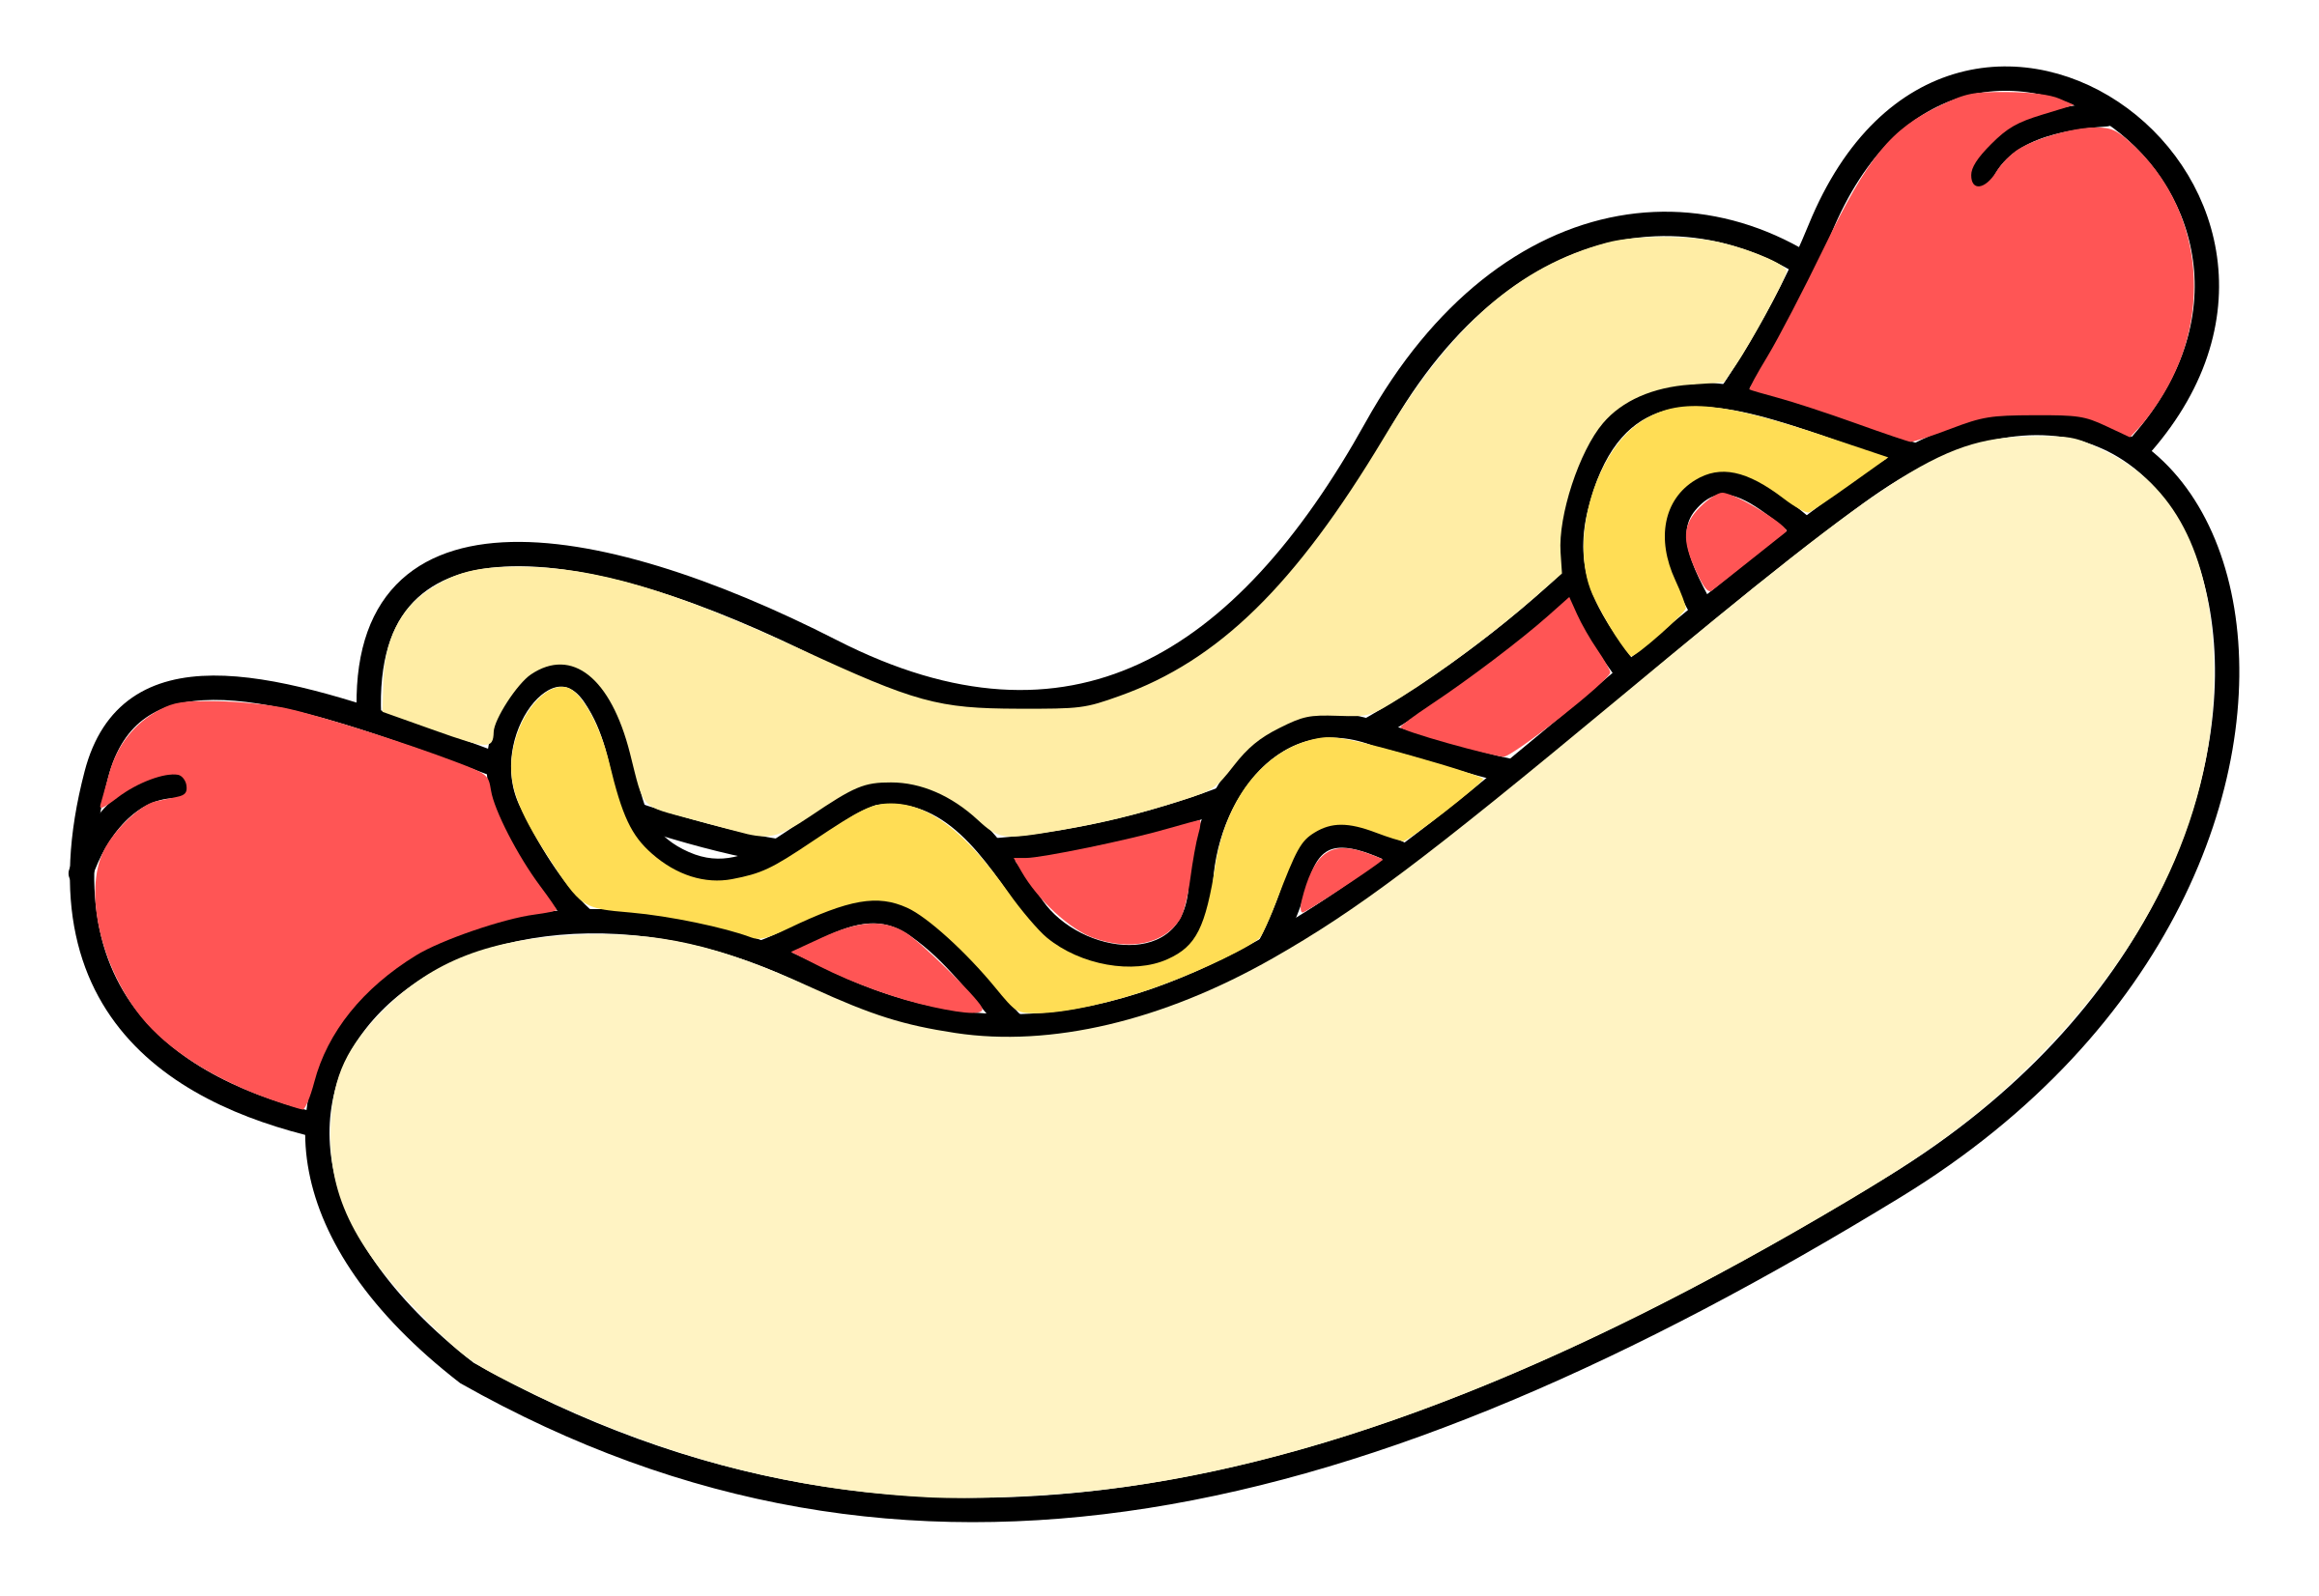 Hot dog bun clipart graphic free download Clipart - hotdog - colour graphic free download